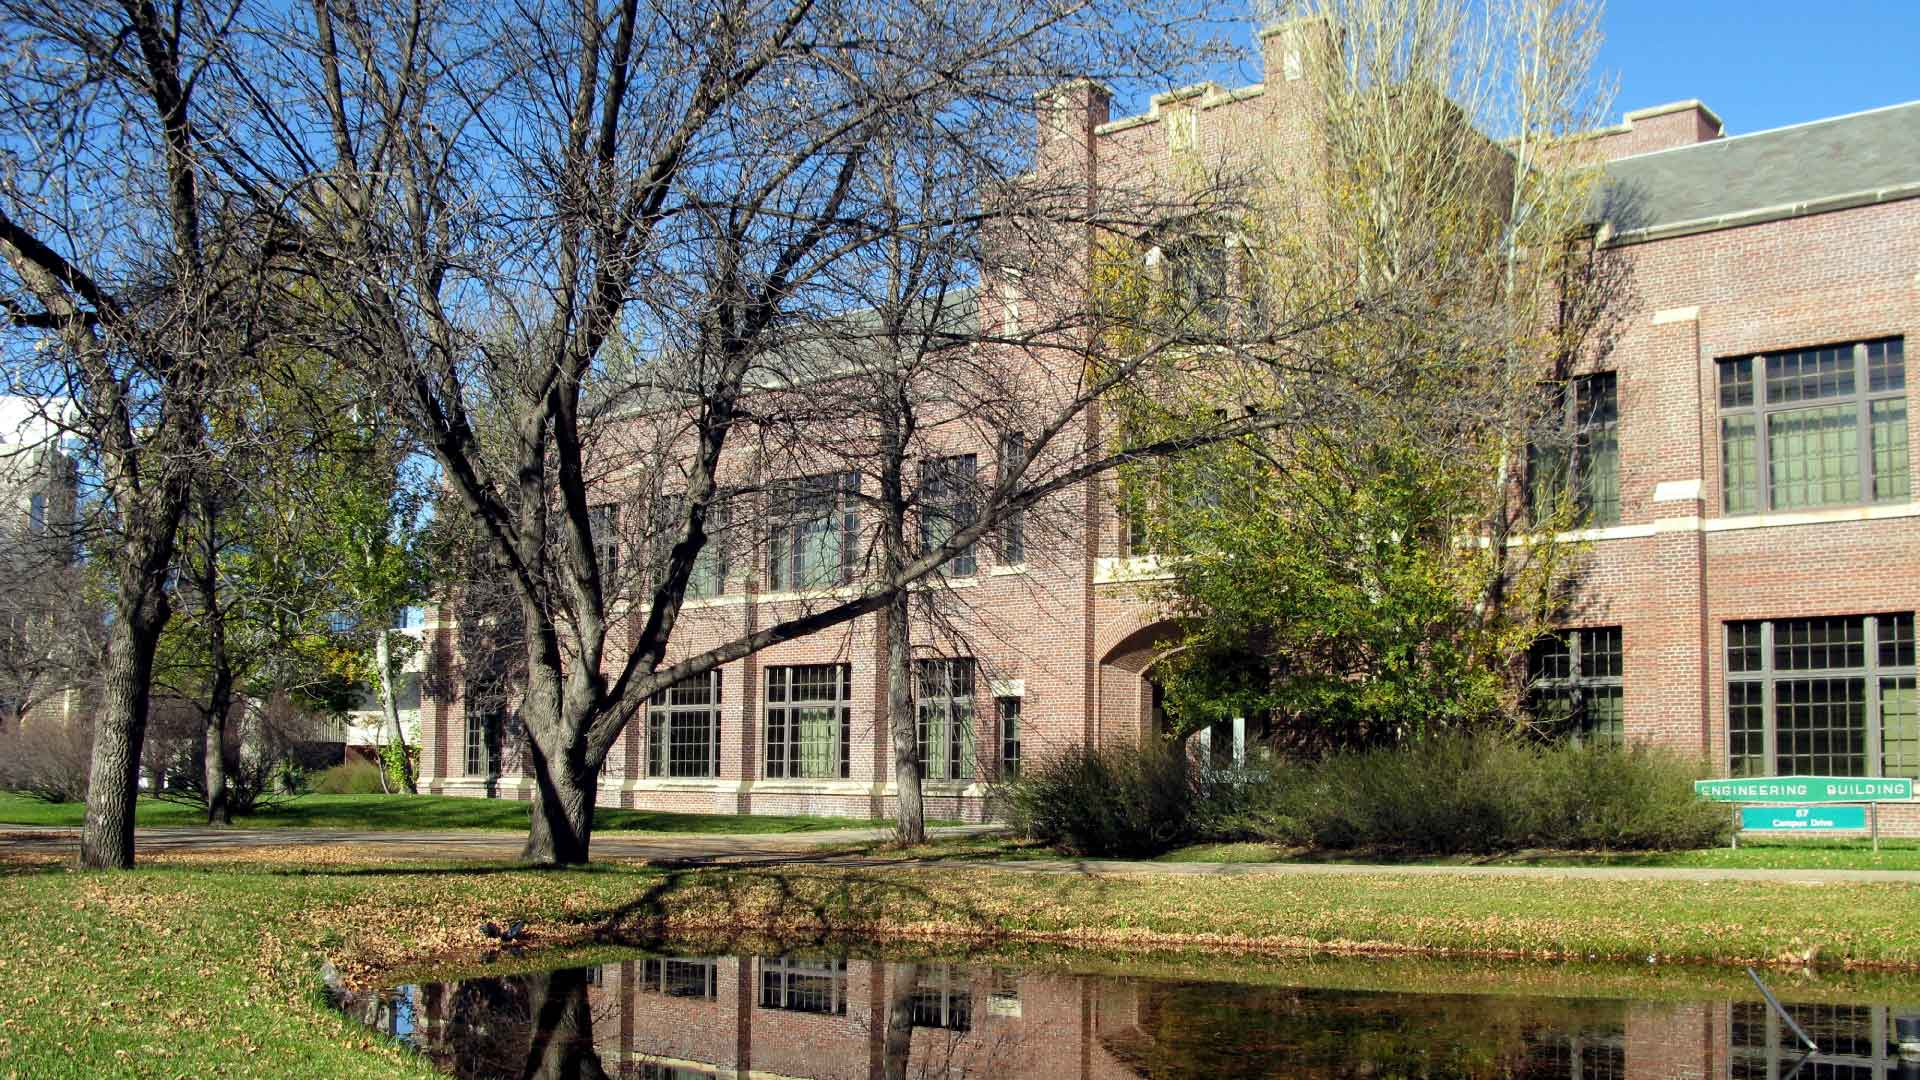 Building and pond at the University of Saskatchewan with blue skies